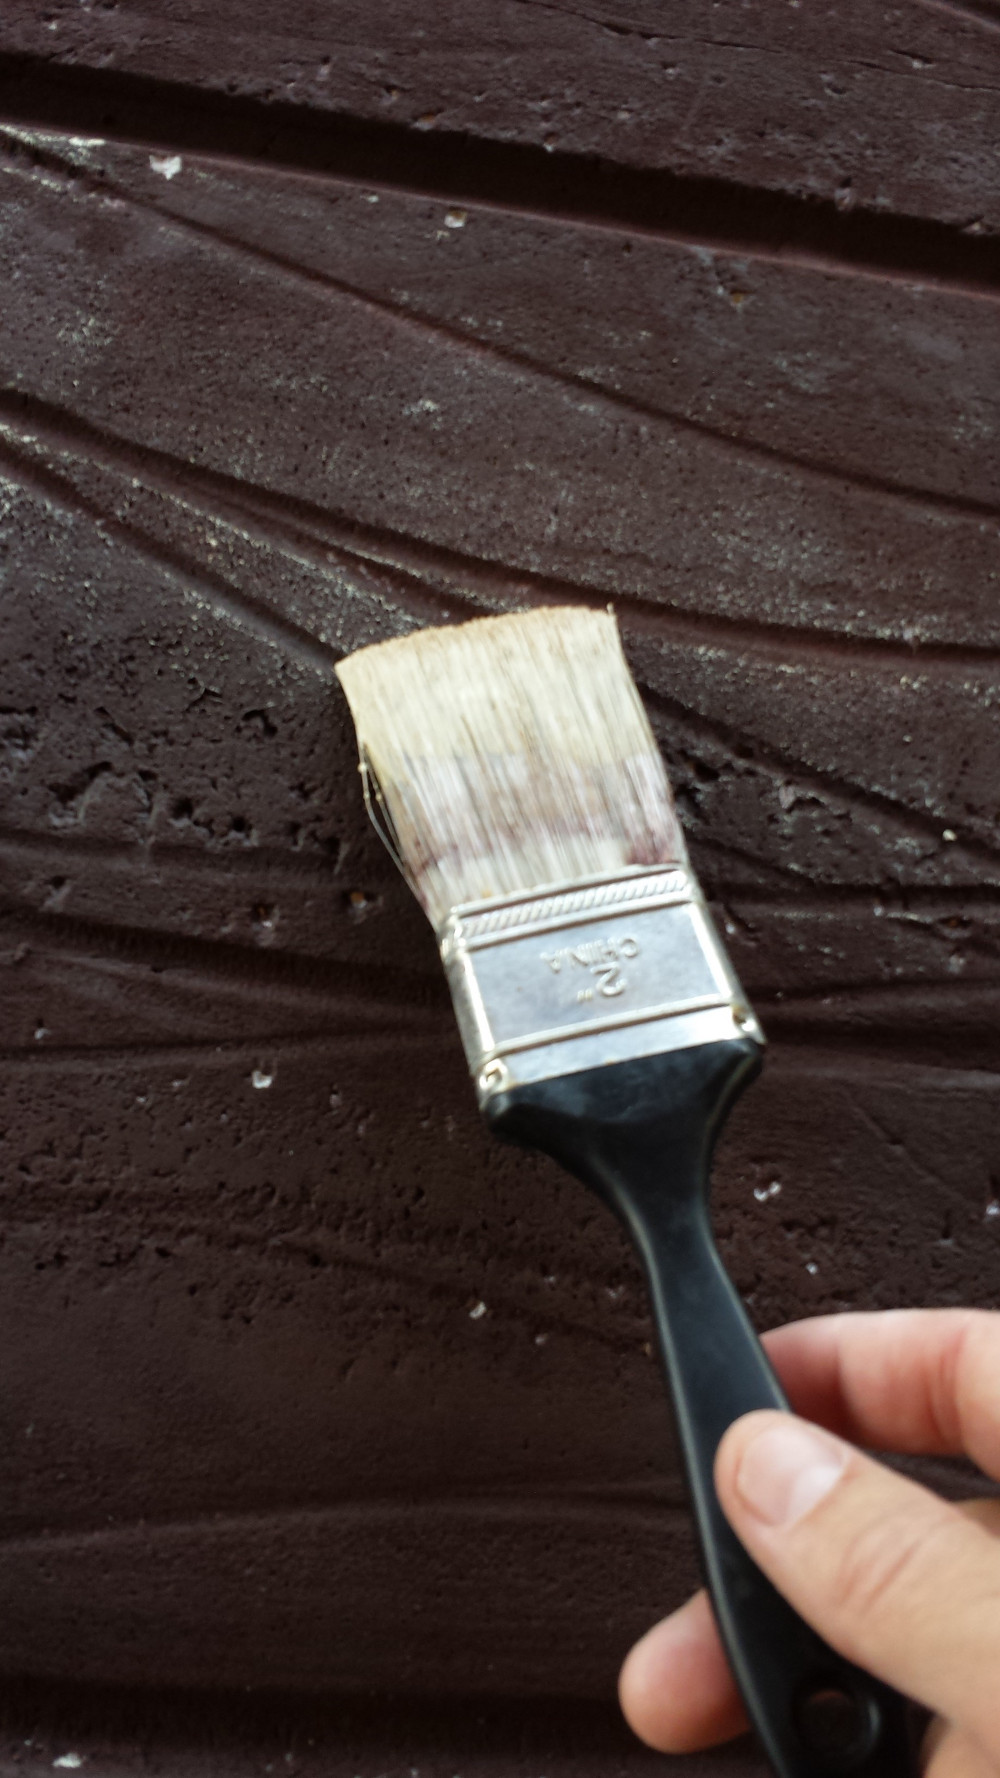 Drag the brush lightly across the grain to highlight it.